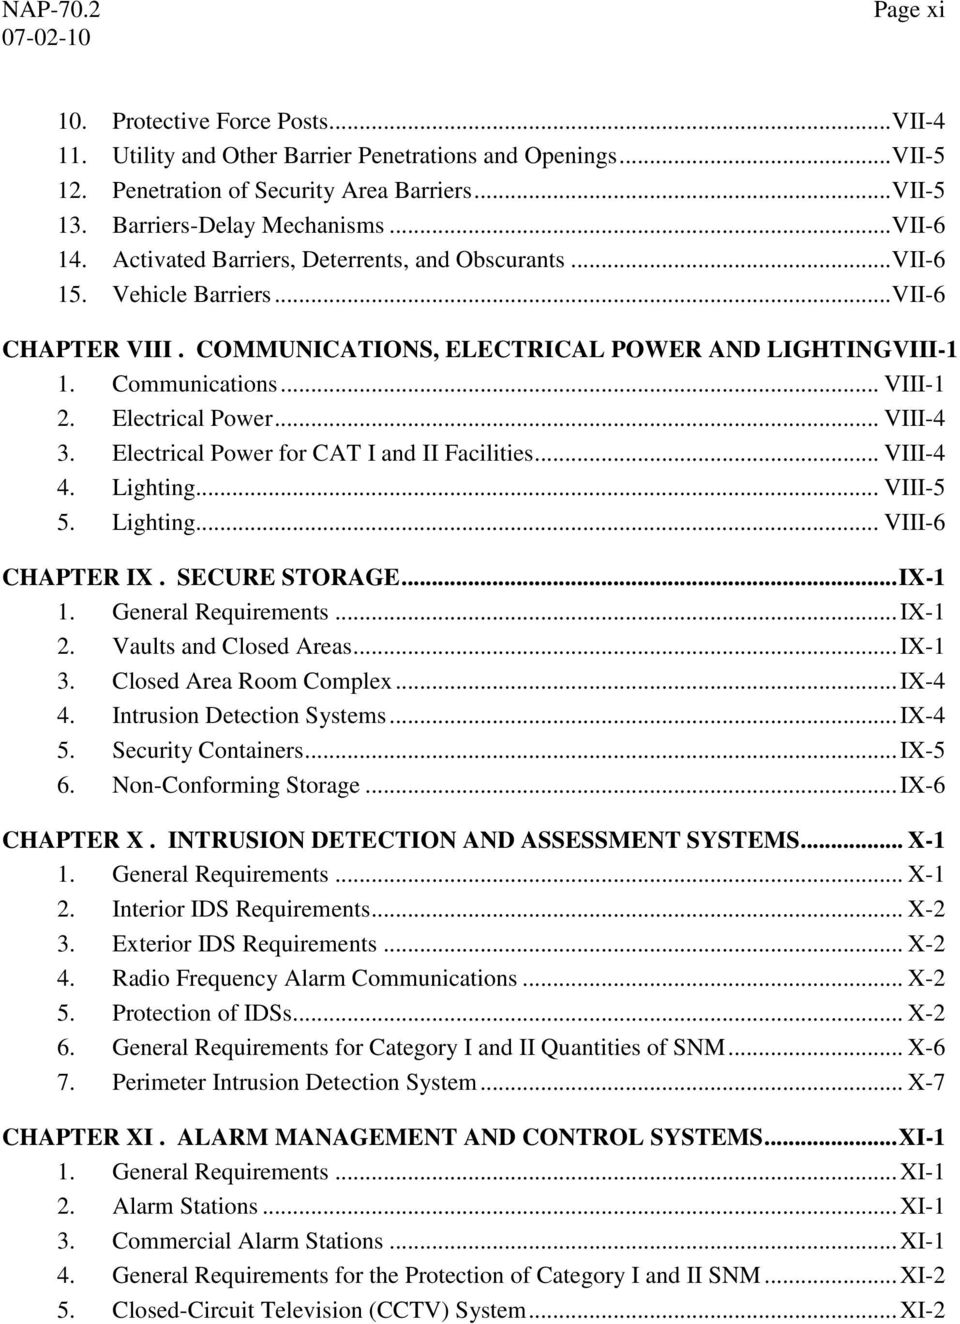 Electrical Power... VIII-4 3. Electrical Power for CAT I and II Facilities... VIII-4 4. Lighting... VIII-5 5. Lighting... VIII-6 CHAPTER IX. SECURE STORAGE... IX-1 1. General Requirements... IX-1 2.